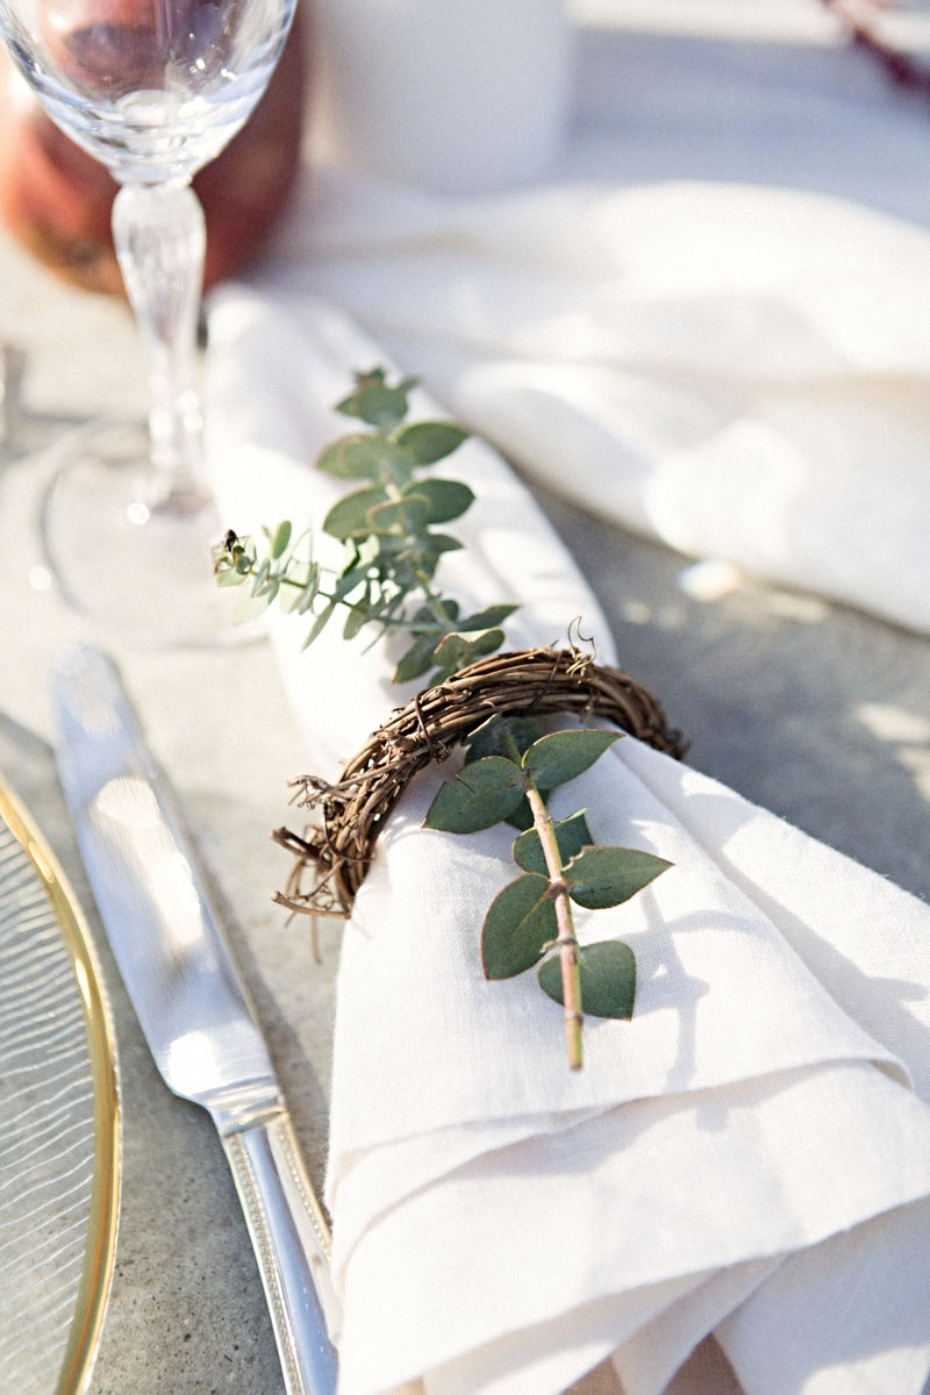 Add a sprig of greenery to your napkin